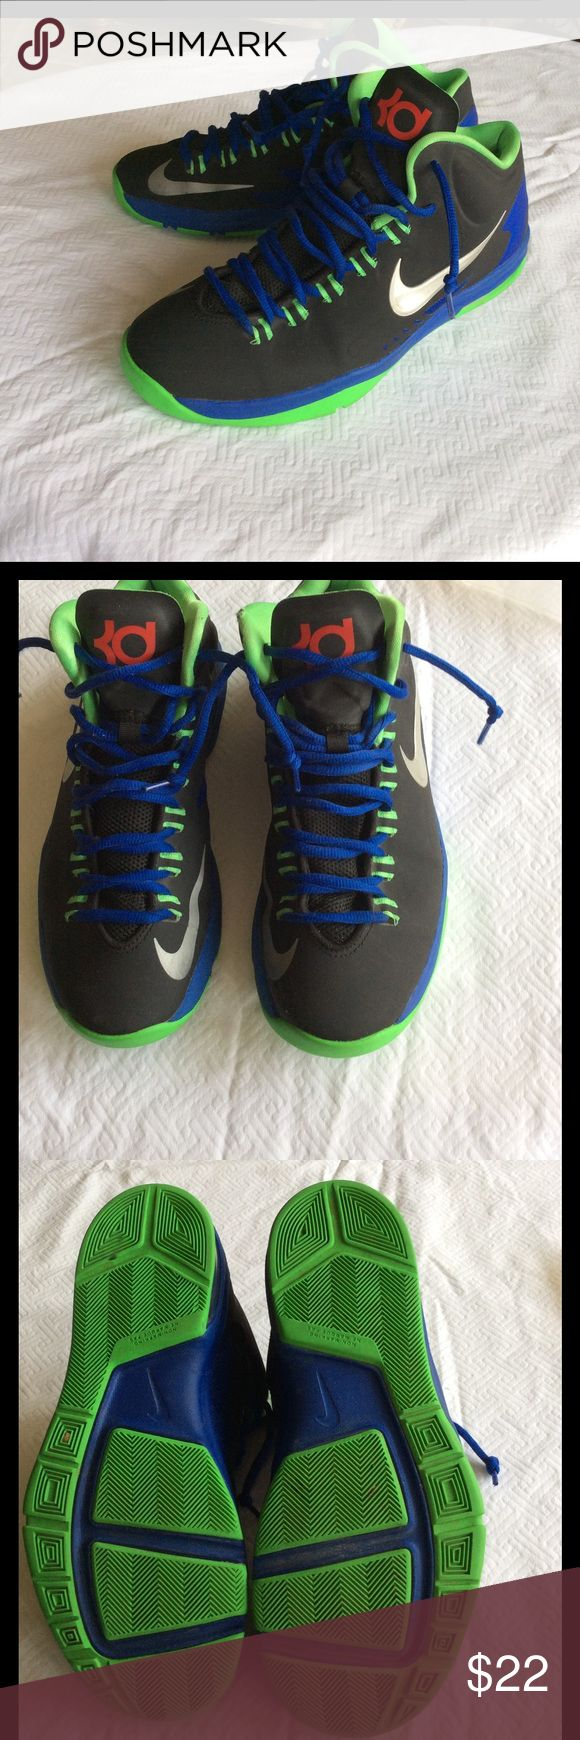 Nike KD Basketball Sneaker Nike KD Youth Basketball sneaker, previously used but in good shape. Nike Shoes Sneakers